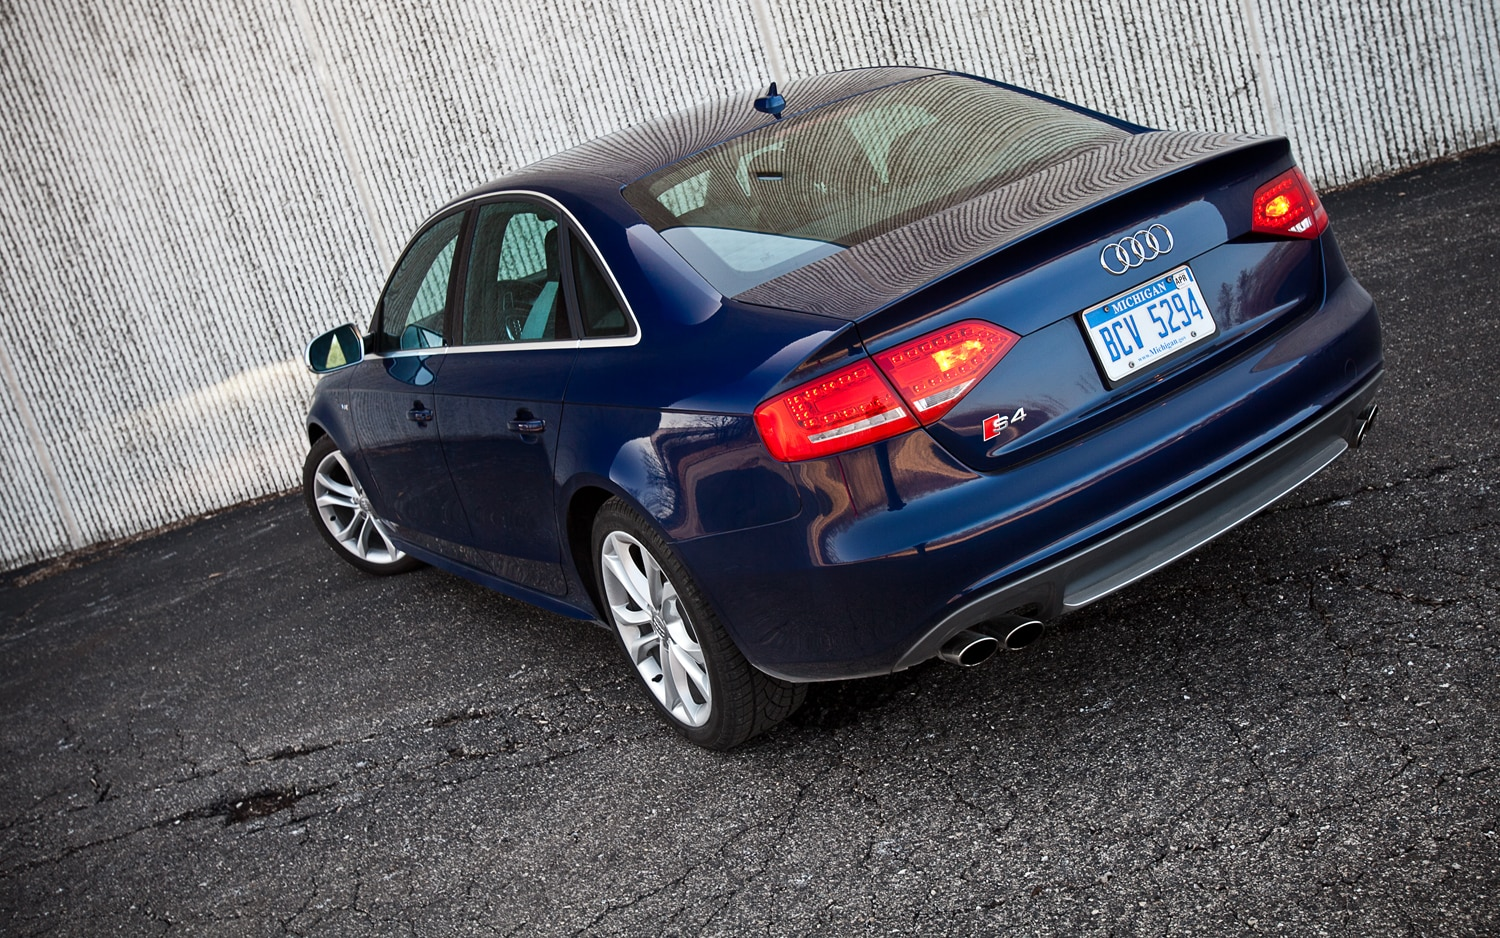 Disappointing audi s4